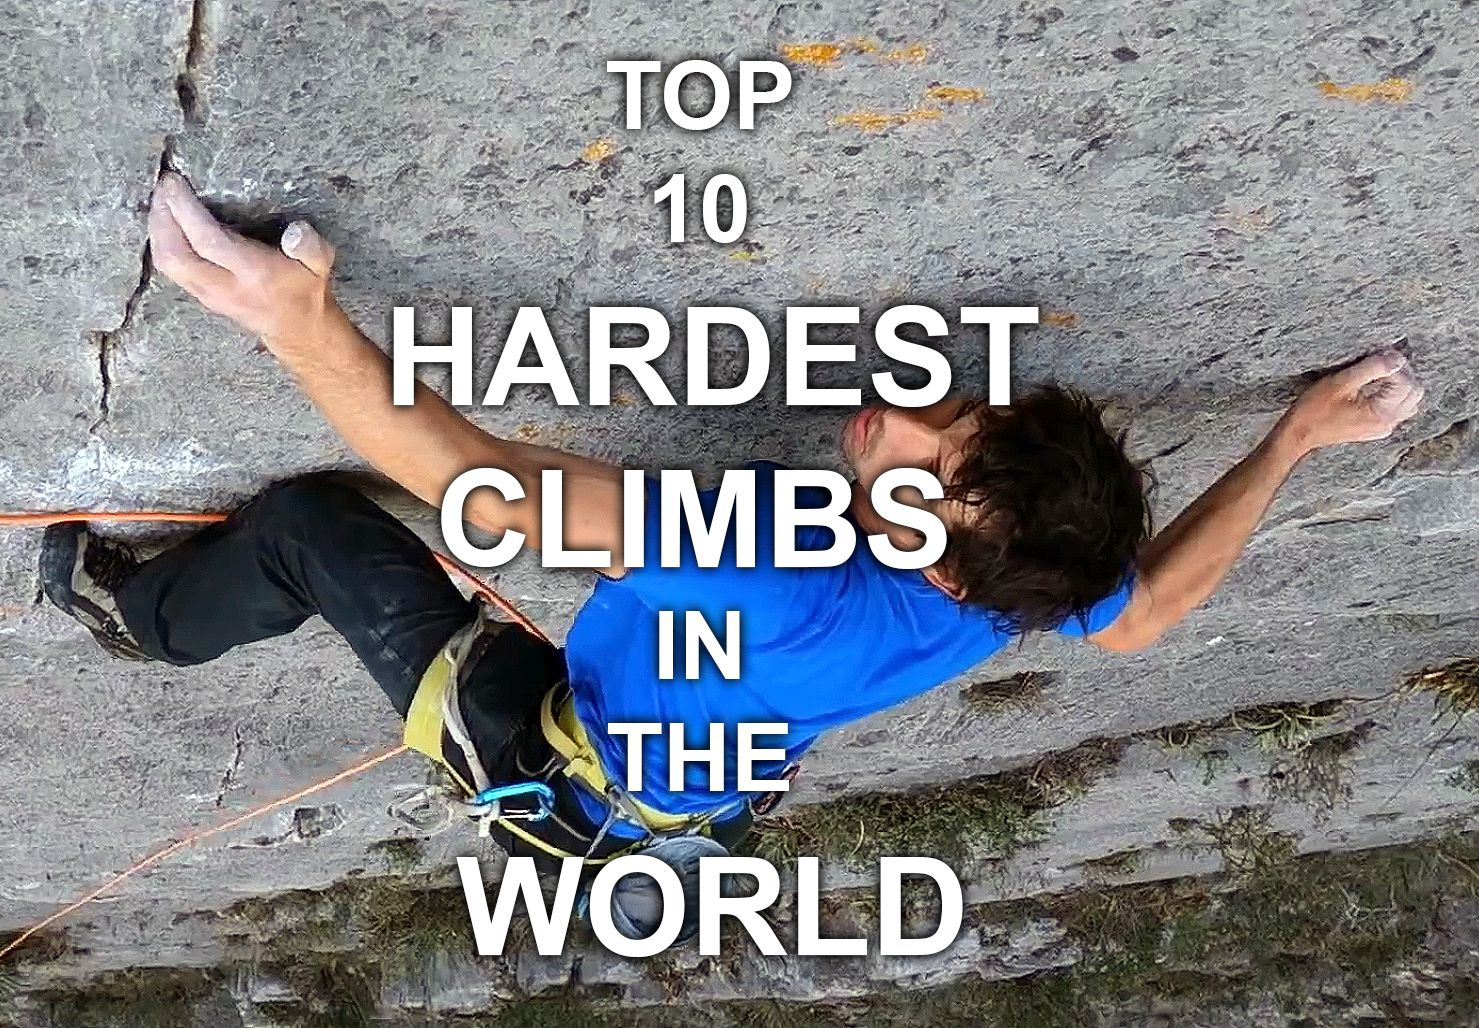 Top 10 Hardest Climbs in the World